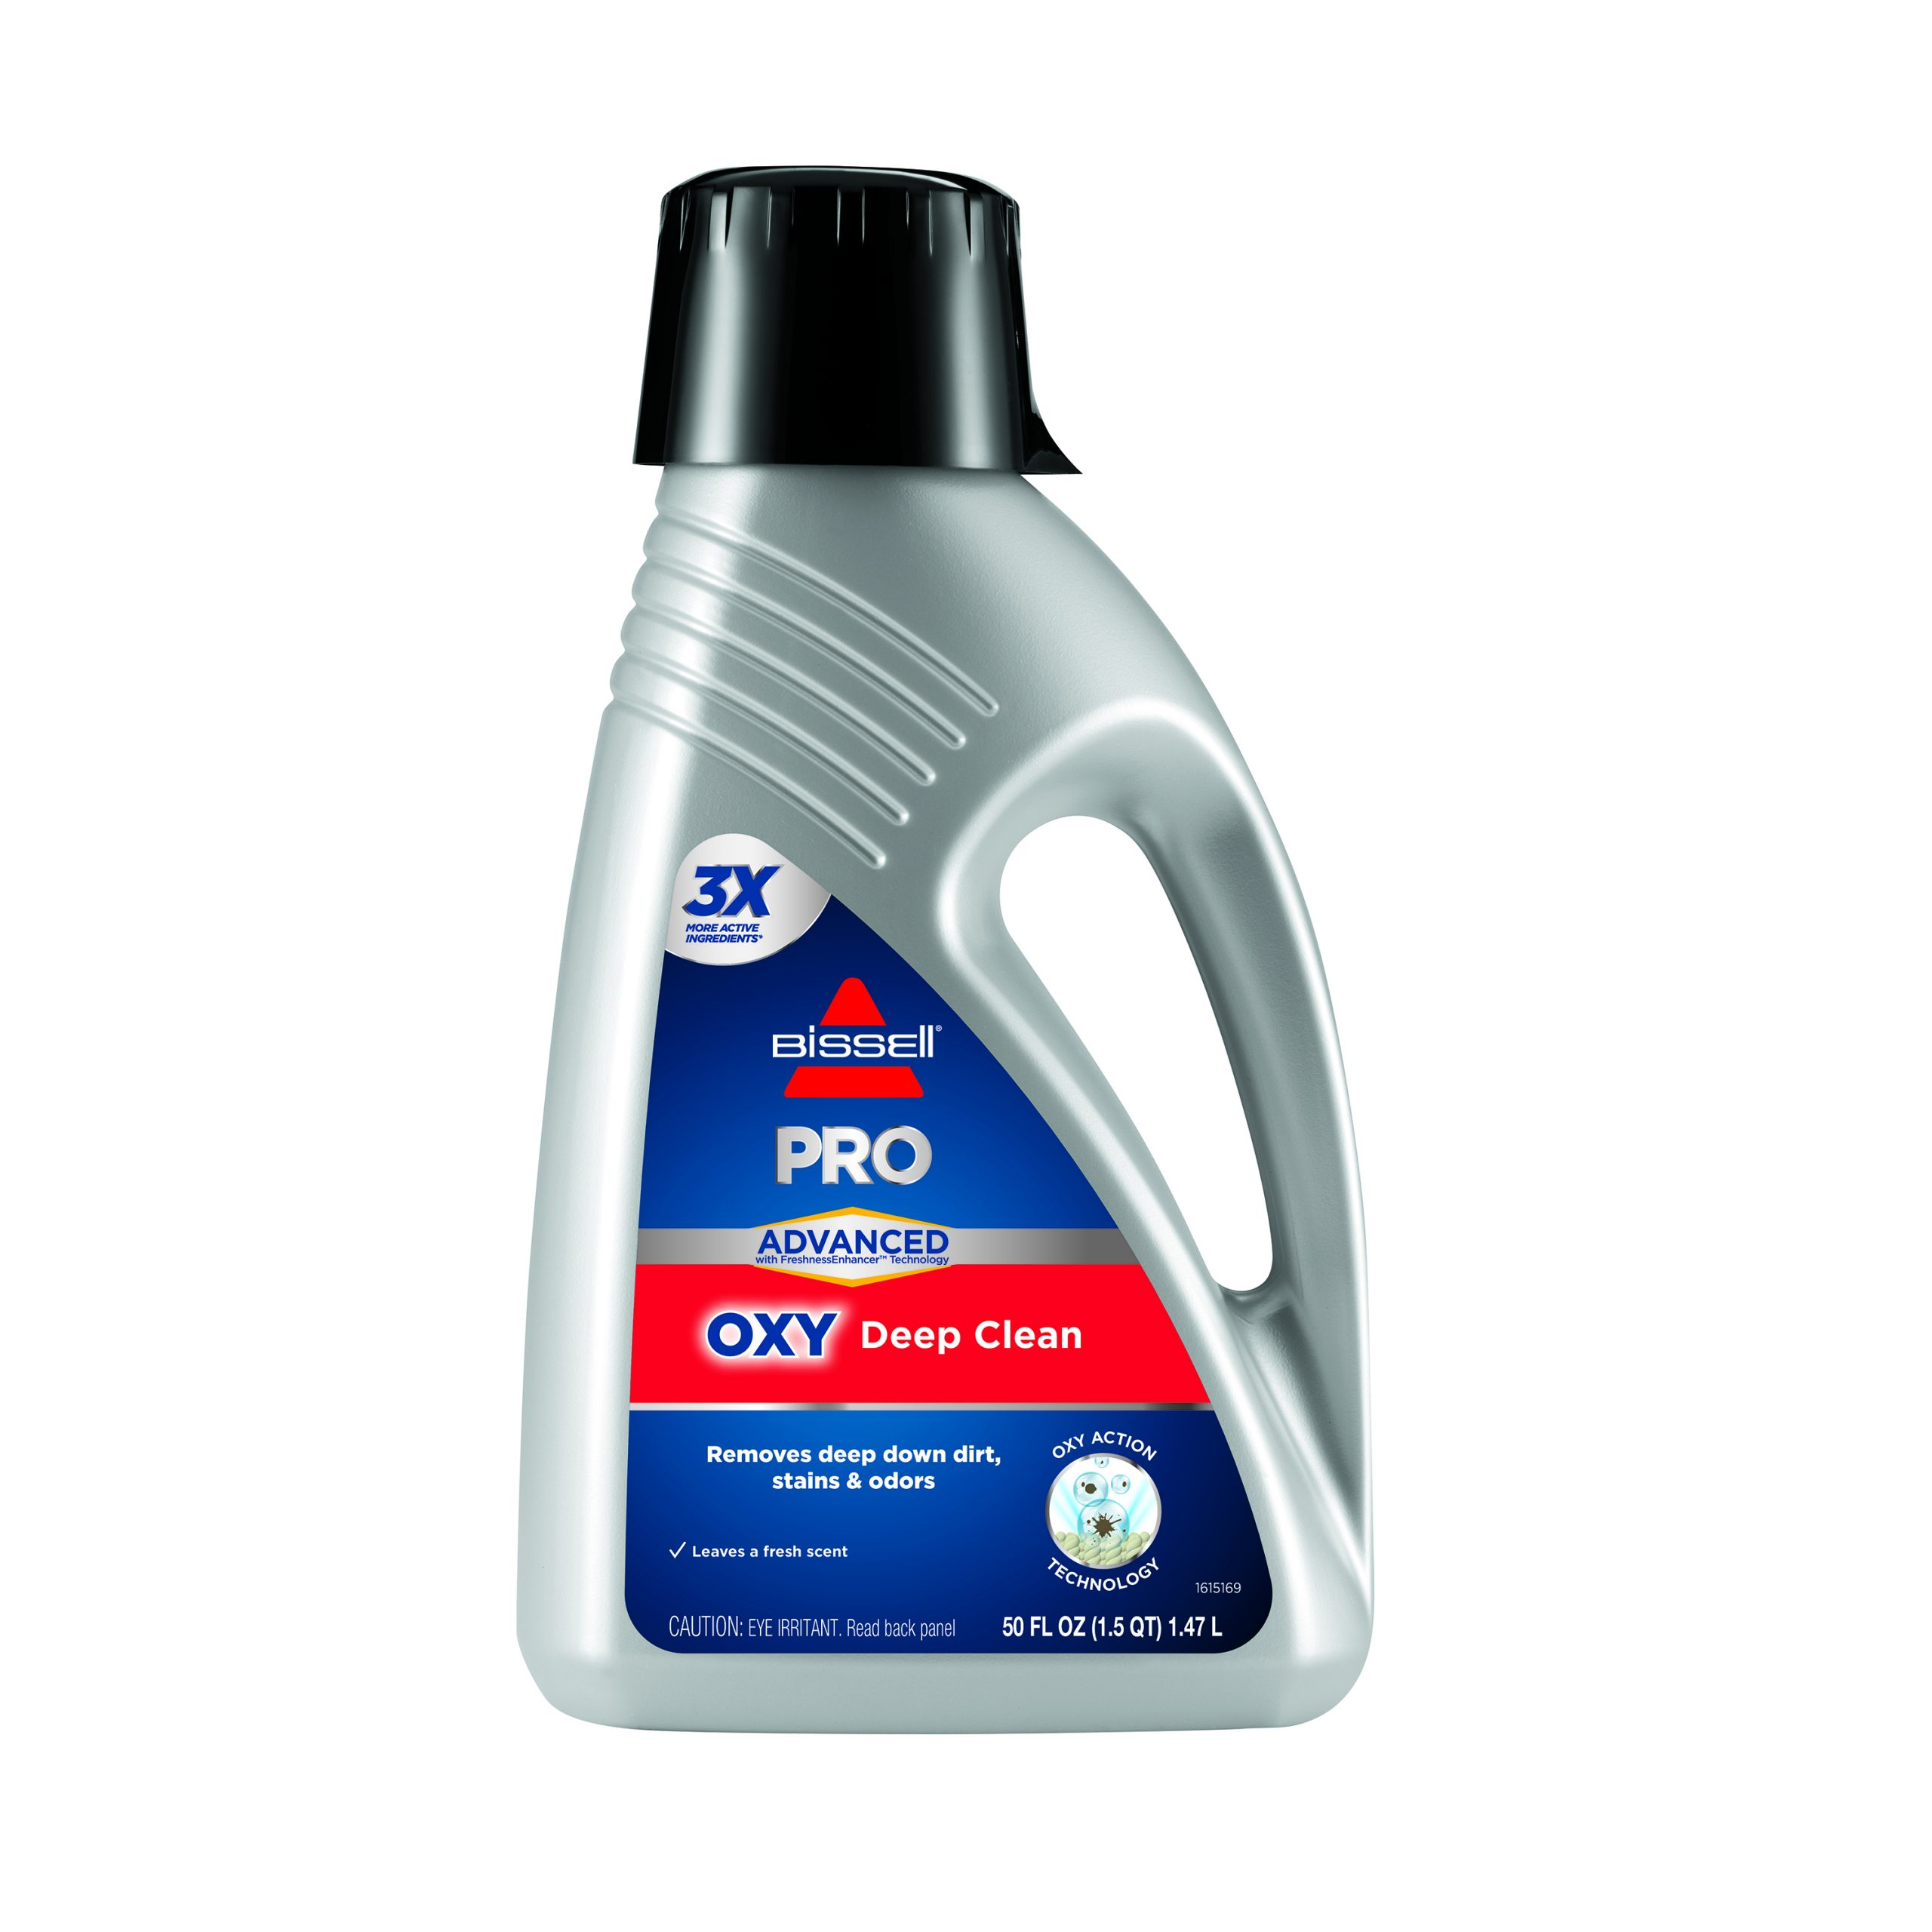 BISSELL Deep Clean + Oxy Advanced Carpet Cleaner Only $17.94 (Reg $19.94) + Free Store Pickup